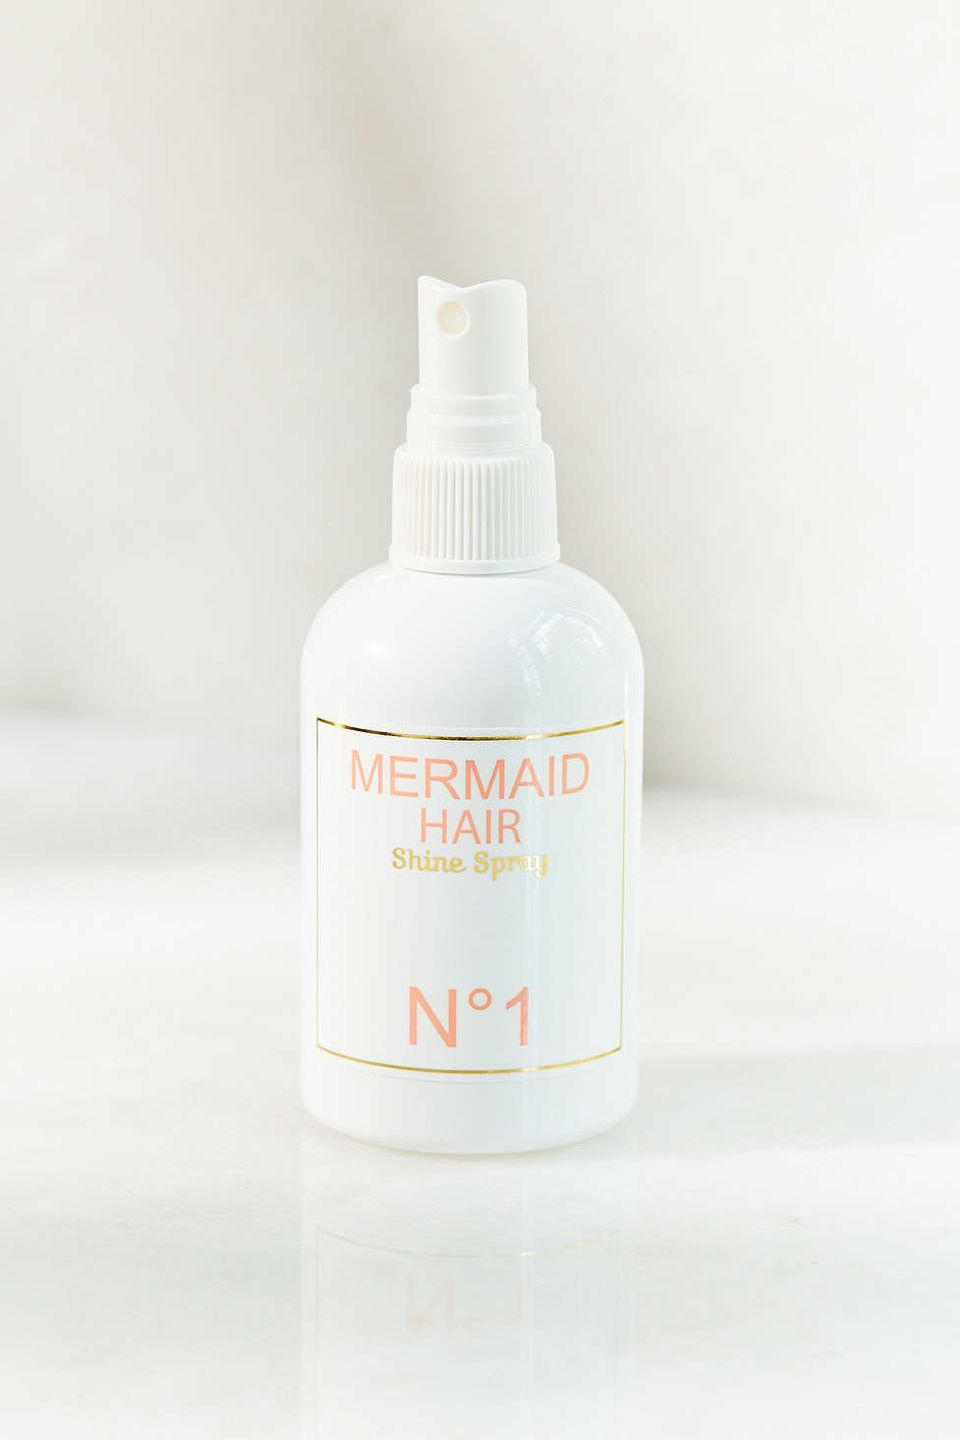 "Mermaid Hair Shine Spray, $28, <a href=""http://www.urbanoutfitters.com/urban/catalog/productdetail.jsp?id=33853193&amp;catego"